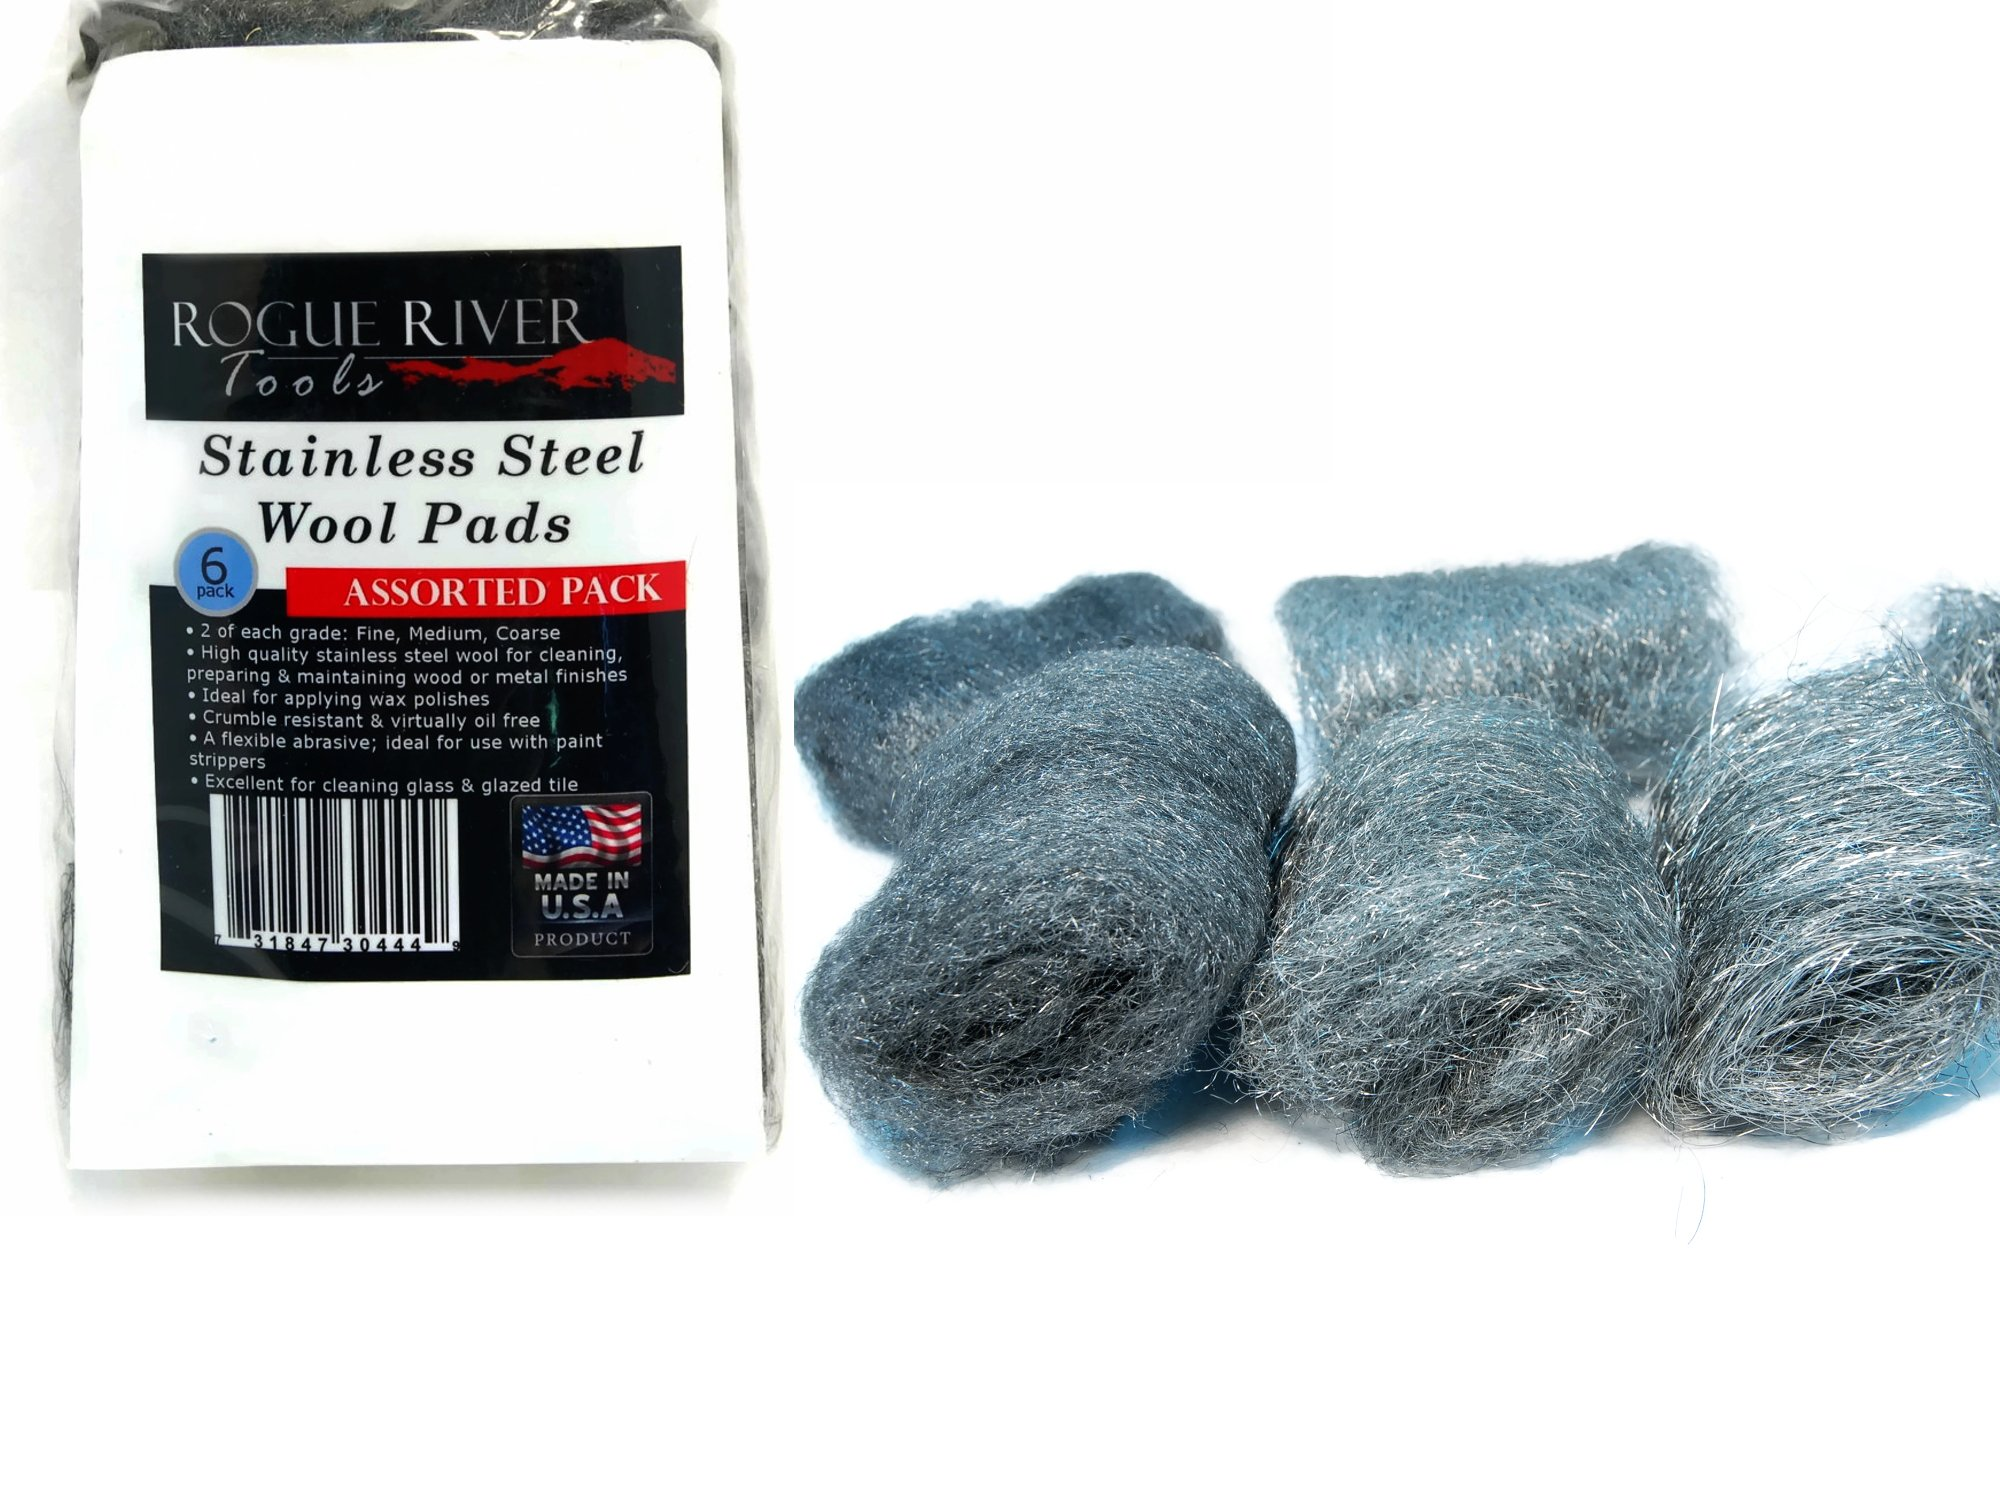 6pc Assorted Pack 434 Stainless Steel Wool Pads (Fine, Medium, Coarse) - Made in USA! by Rogue River Tools